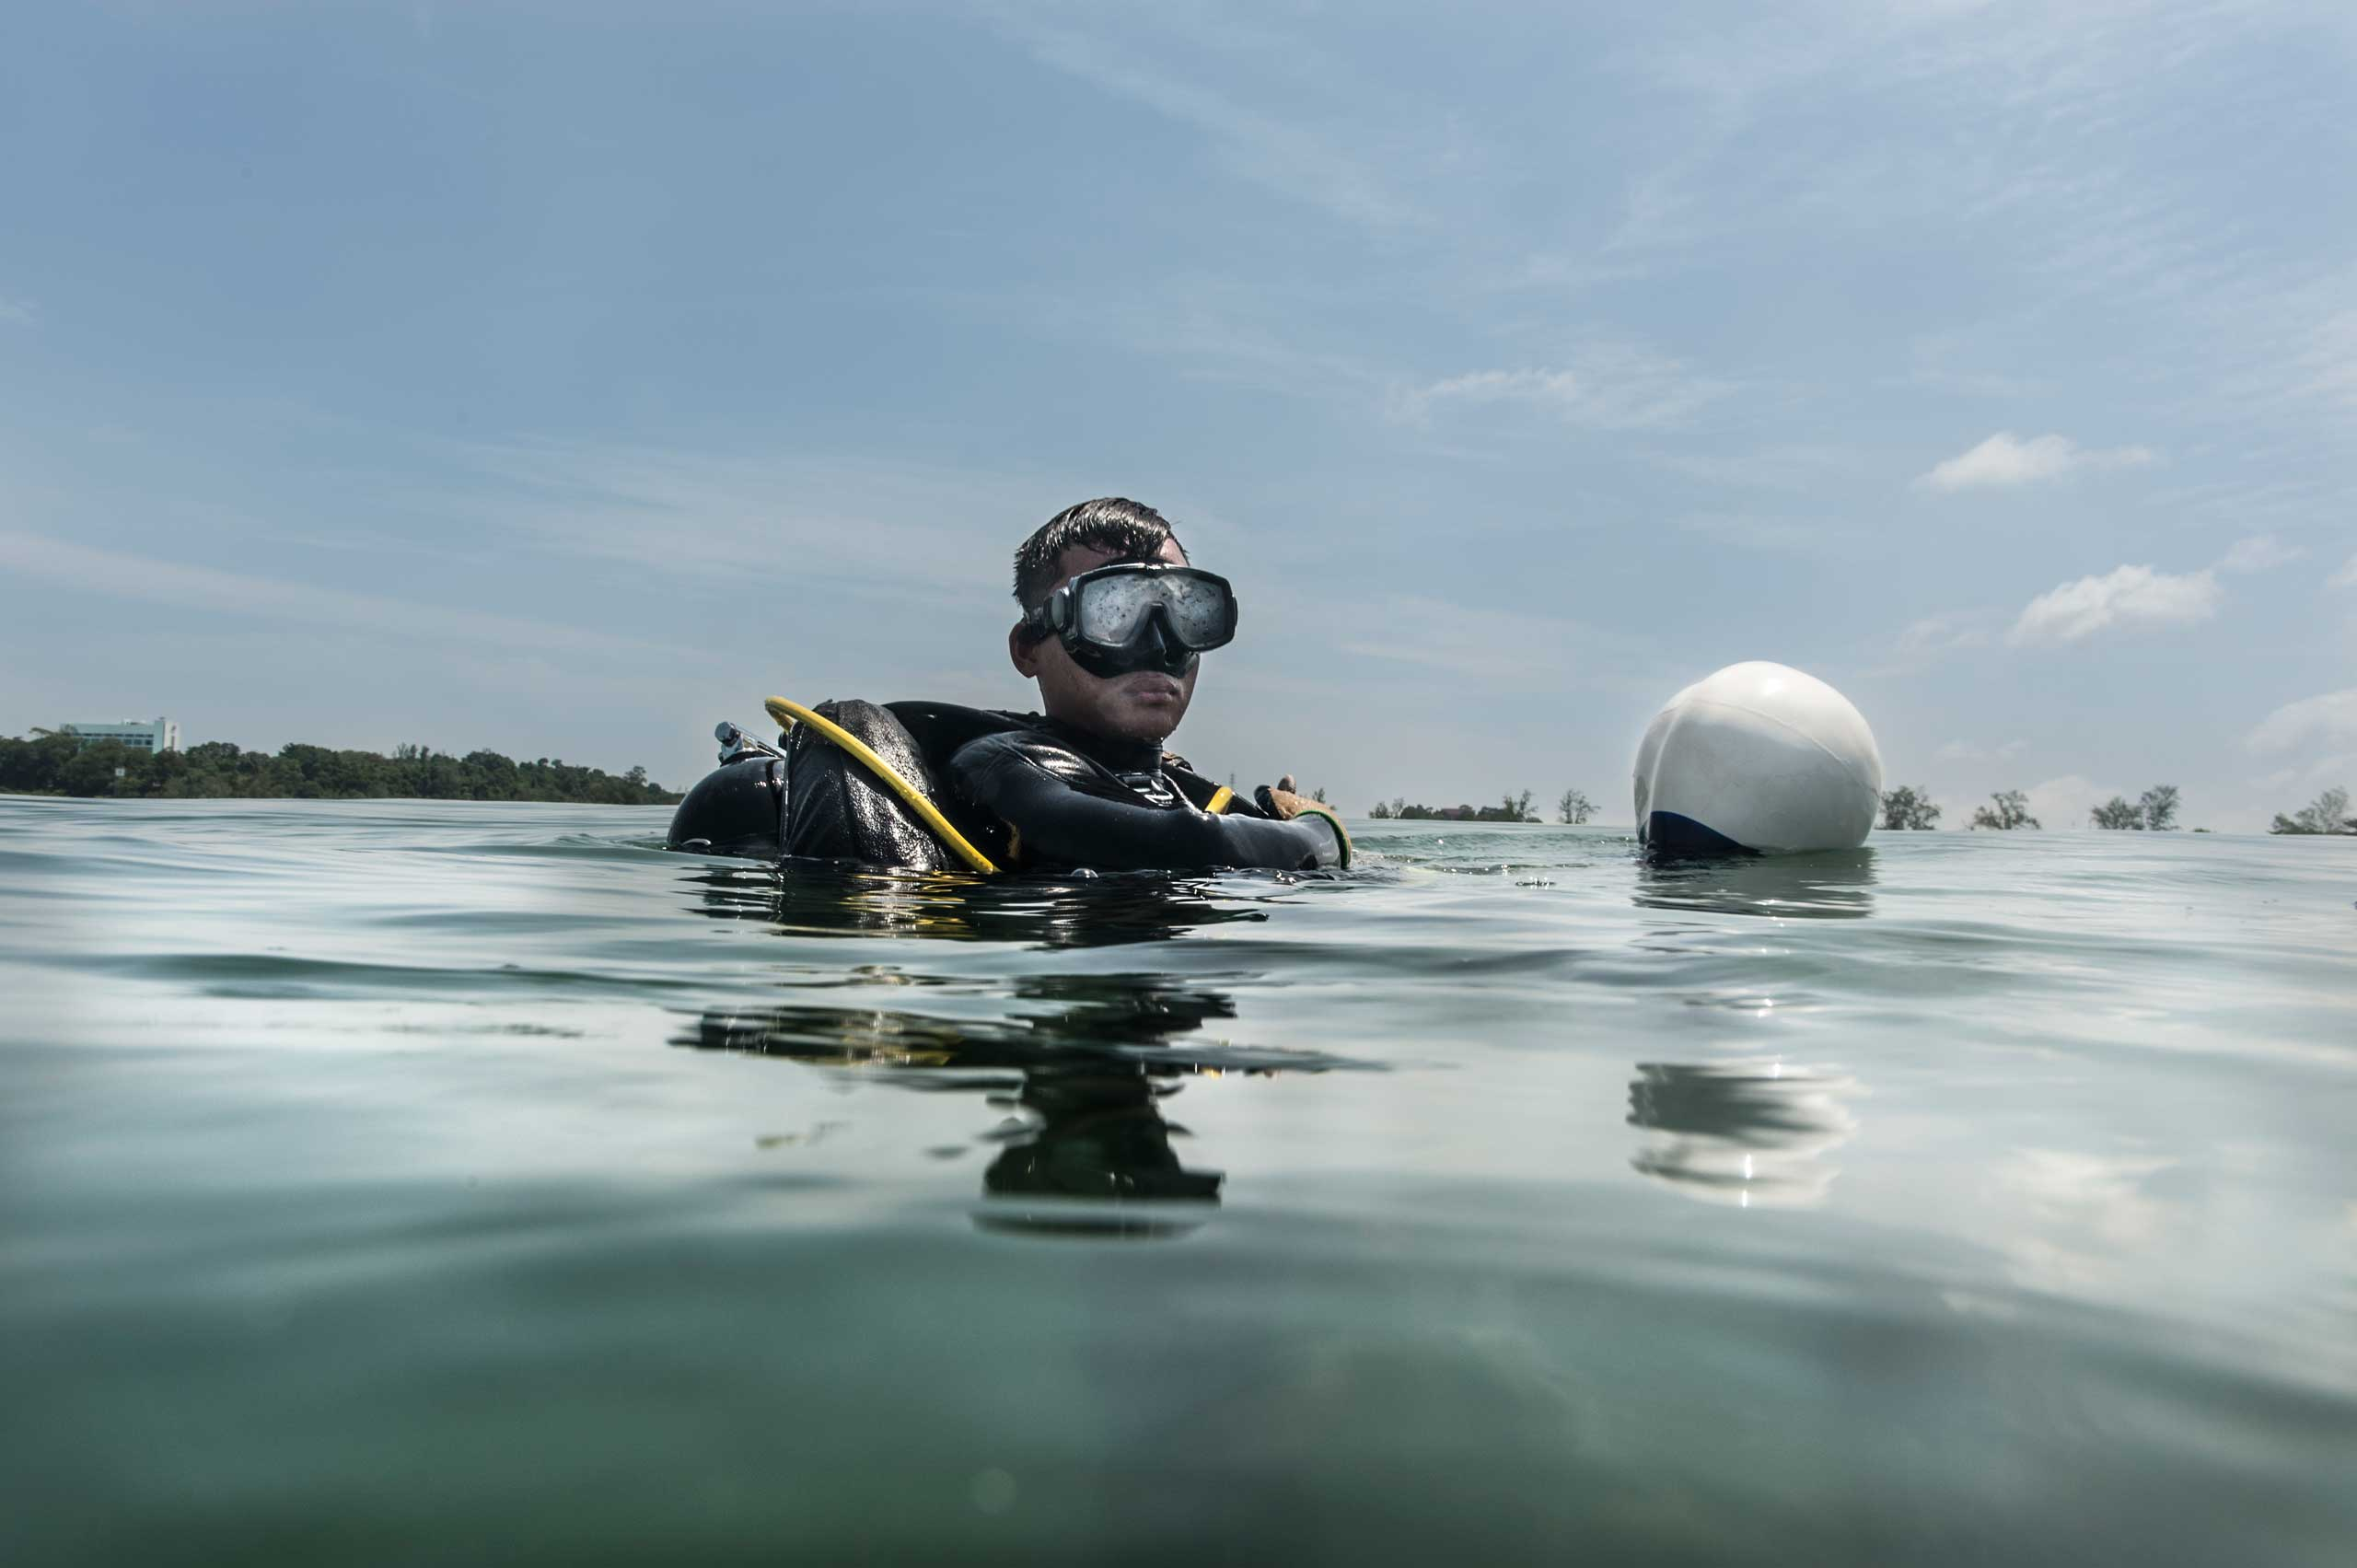 UXO salvage diver Piseth Dara, 24, prepares to dive in July 2014. Dara is taking part in a training programme devised by the USA 7th Engineer Dive Detachment off the coast of Sihanoukville, Cambodia.